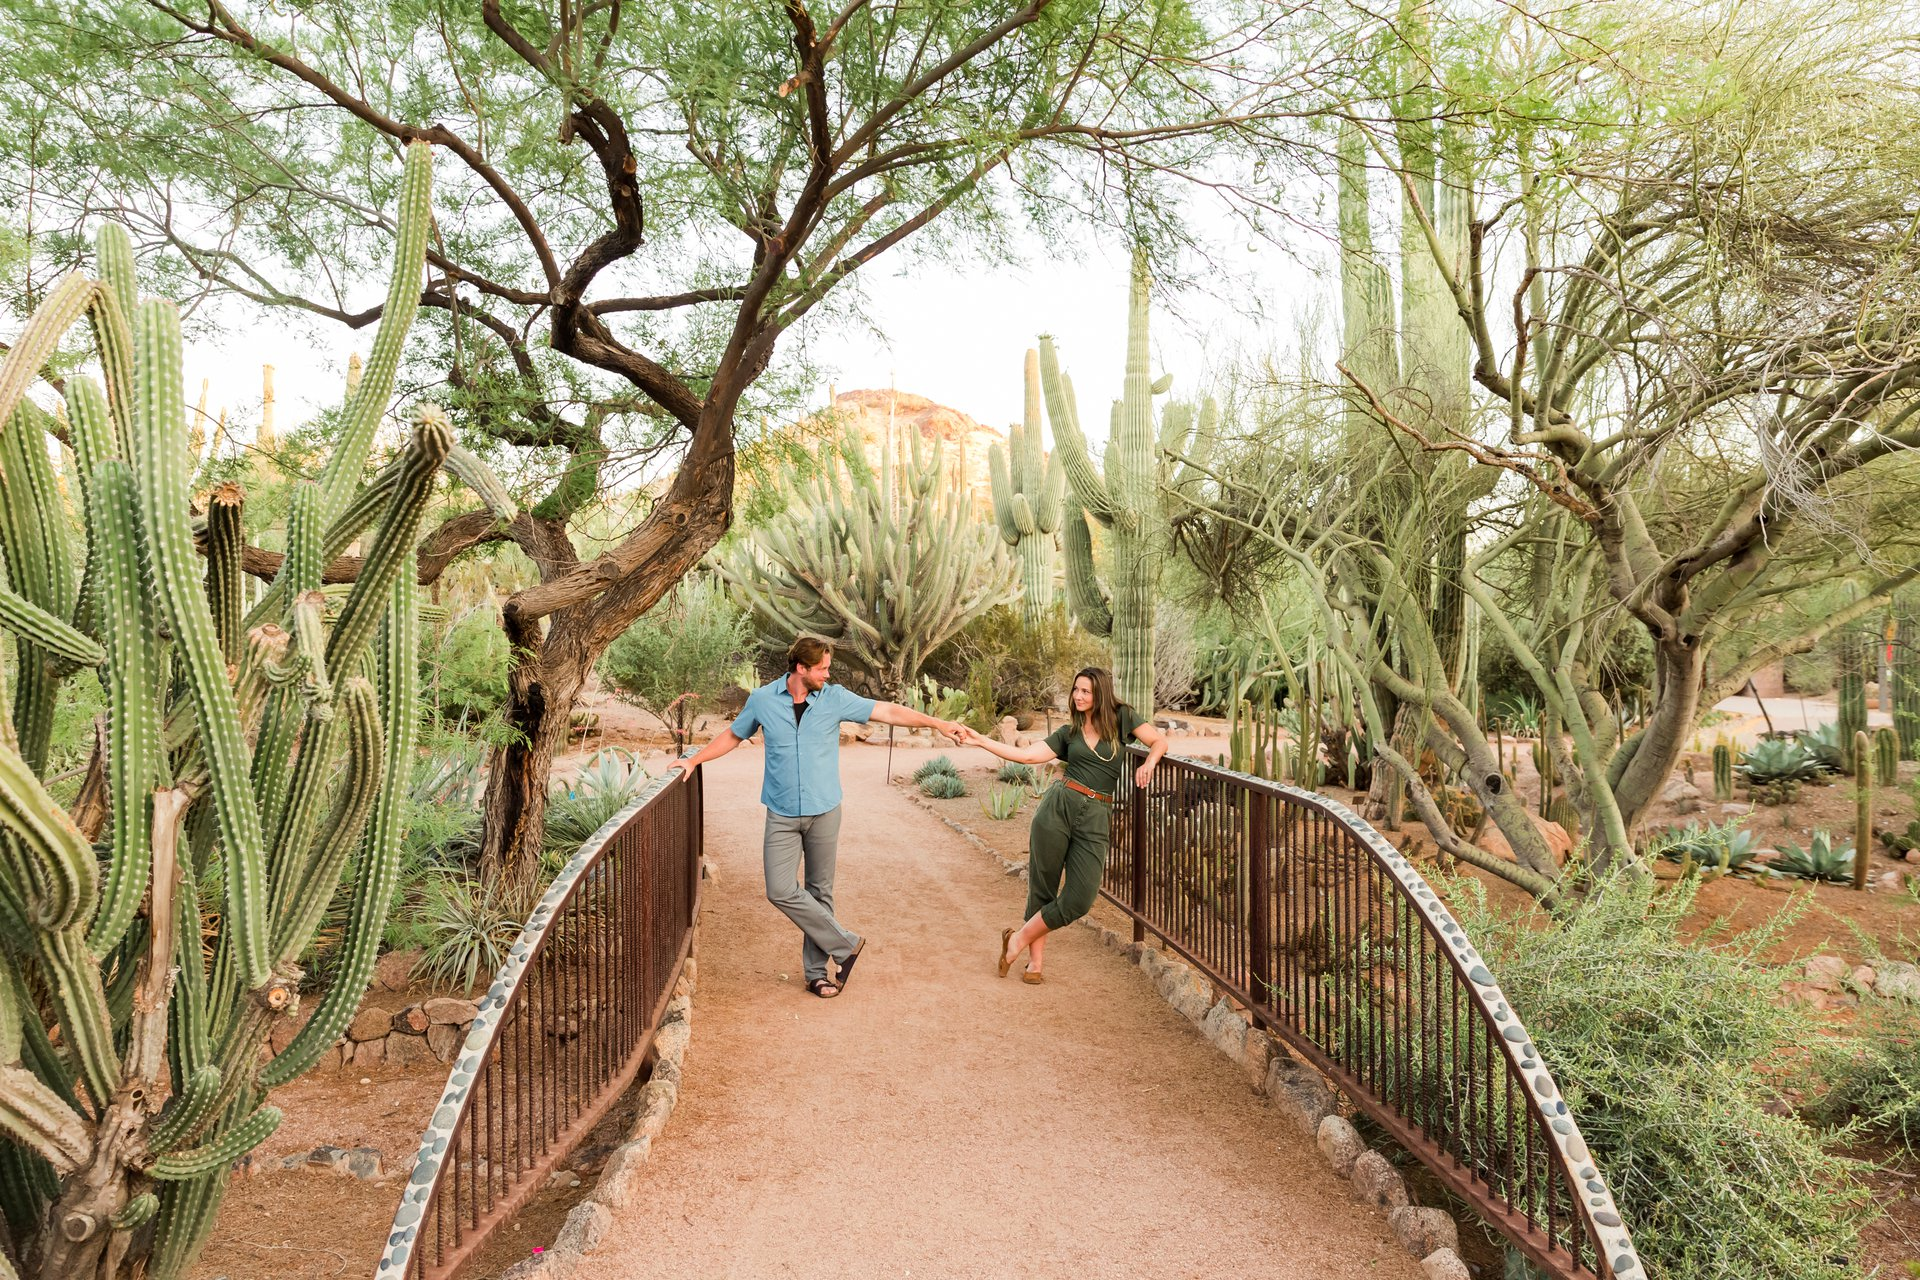 Scottsdale-United States-travel-story-Flytographer-21